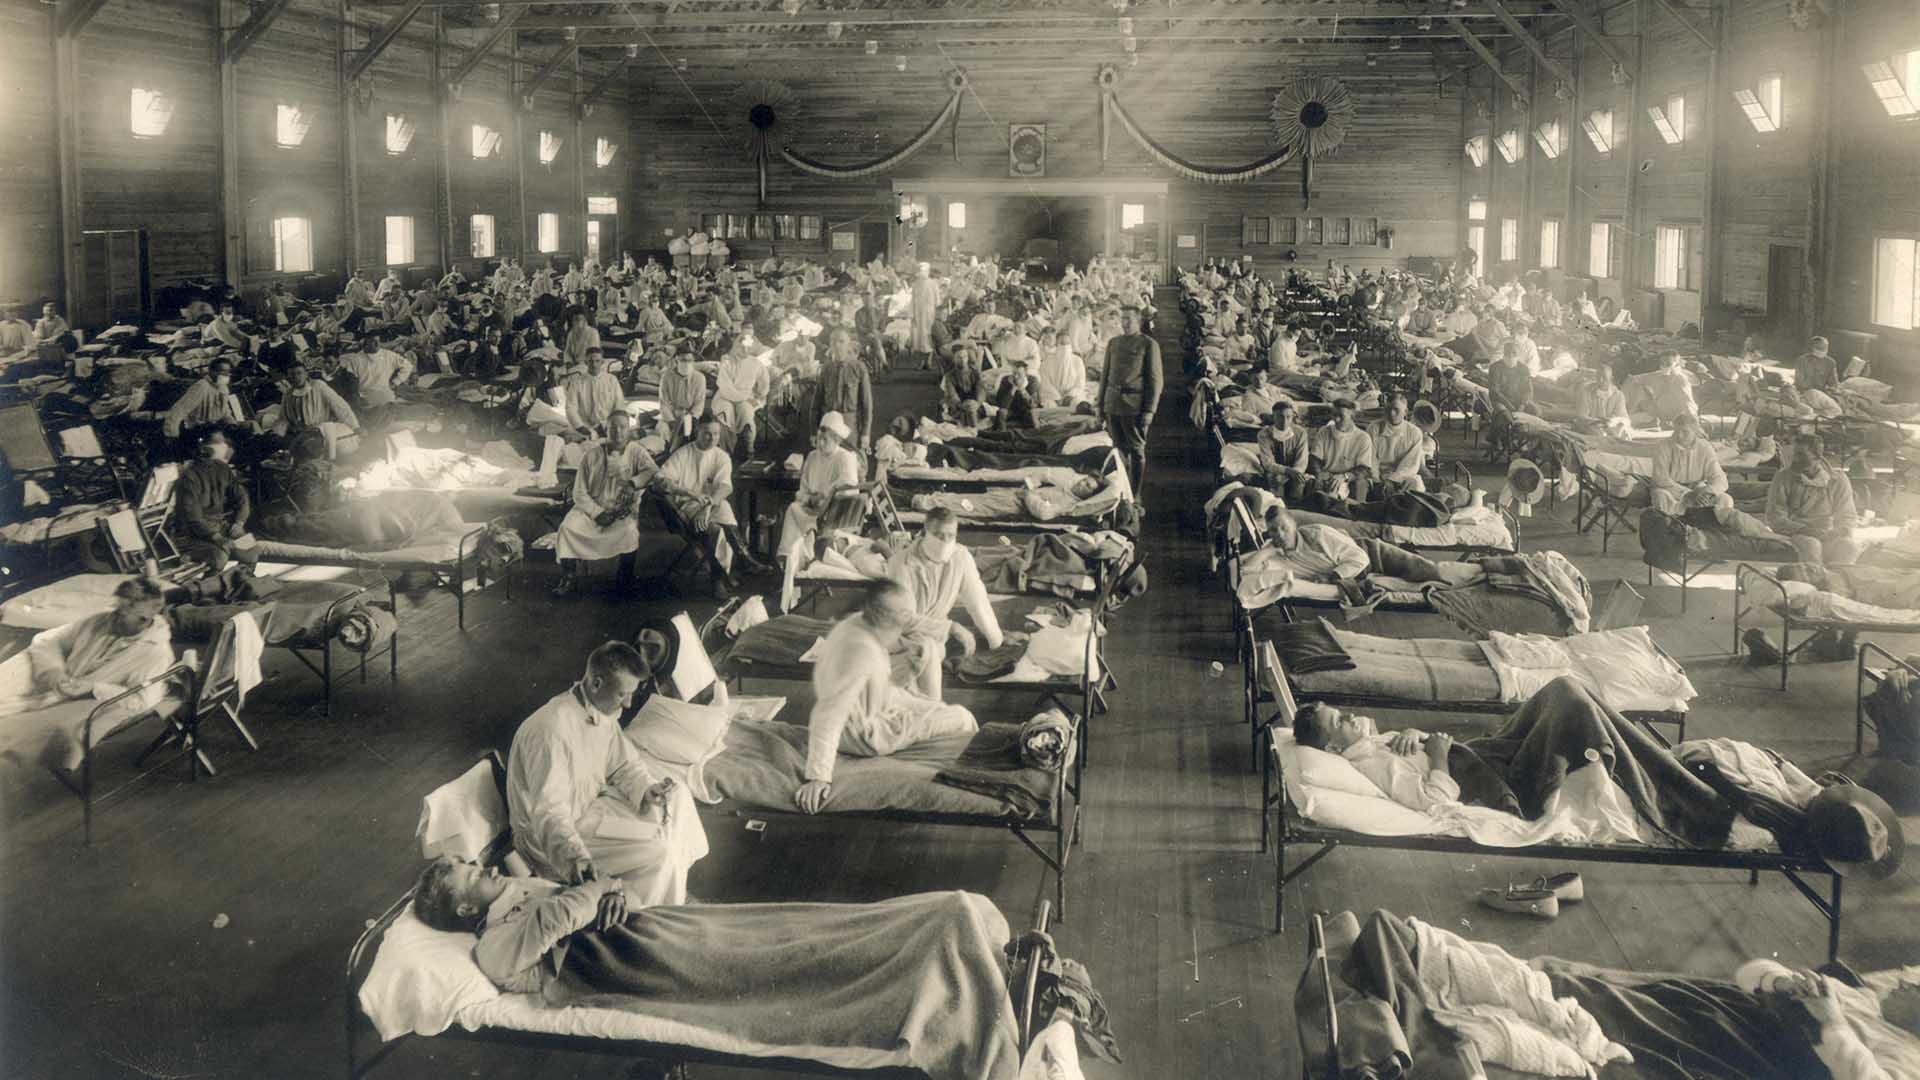 http://recentr.com/wp-content/uploads/2020/04/Emergency_hospital_during_Influenza_epidemic_Camp_Funston_Kansas_-_NCP_1920.jpg